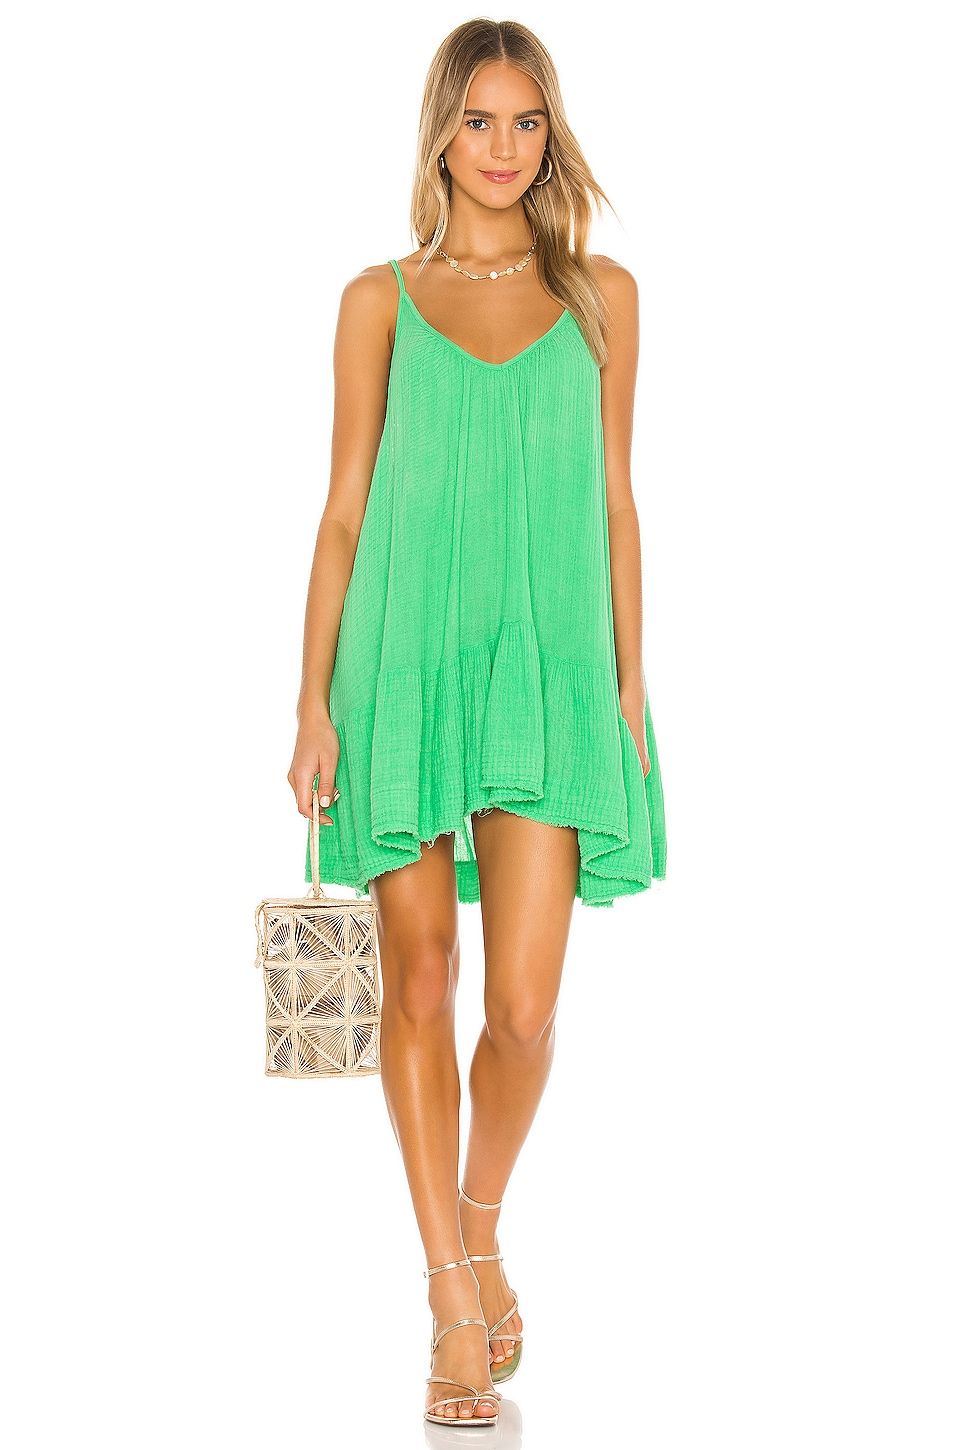 St Tropez Ruffle Mini Dress             9 Seed                                                                                                       CA$ 209.51 2